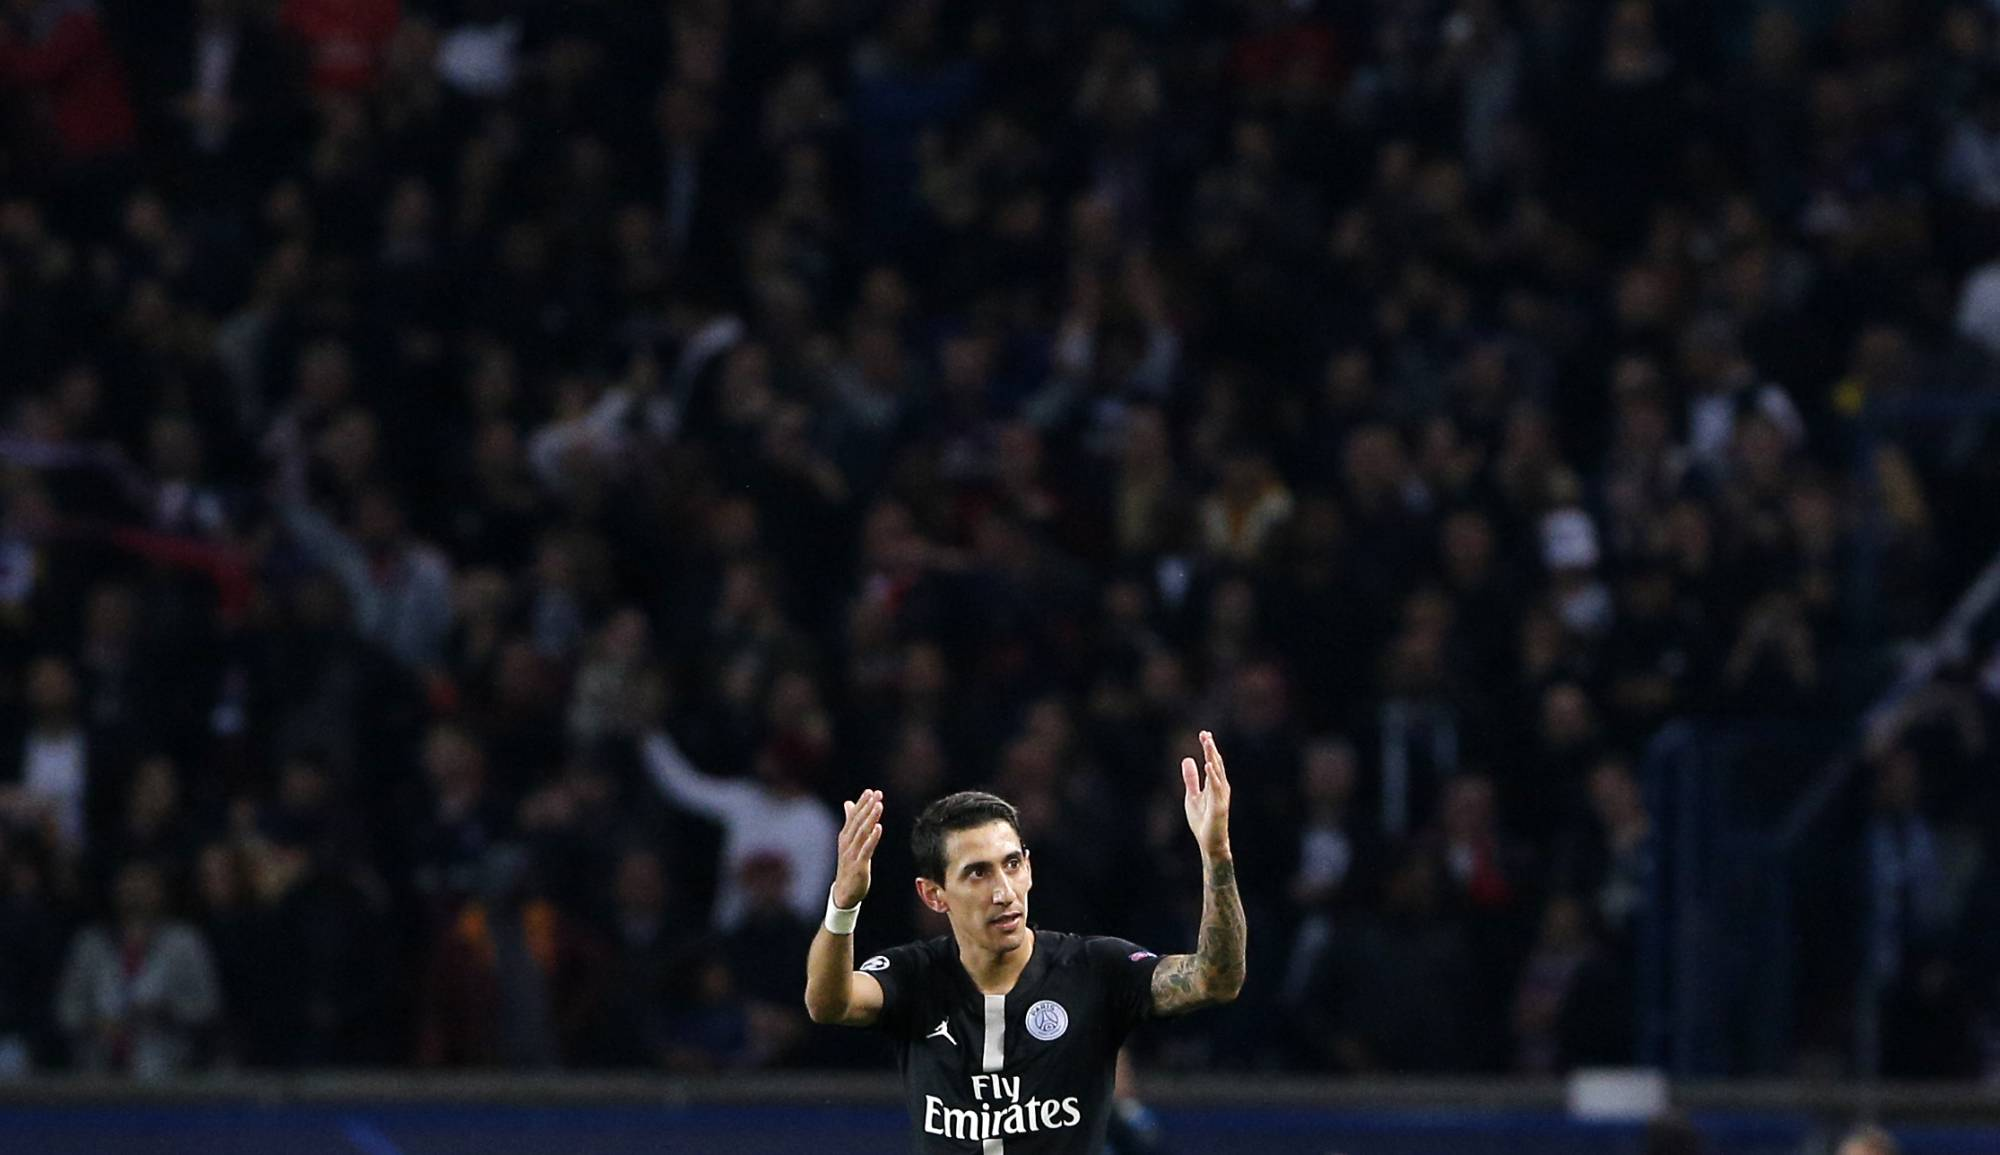 Di Maria's goal saves PSG's blushes in draw with Napoli